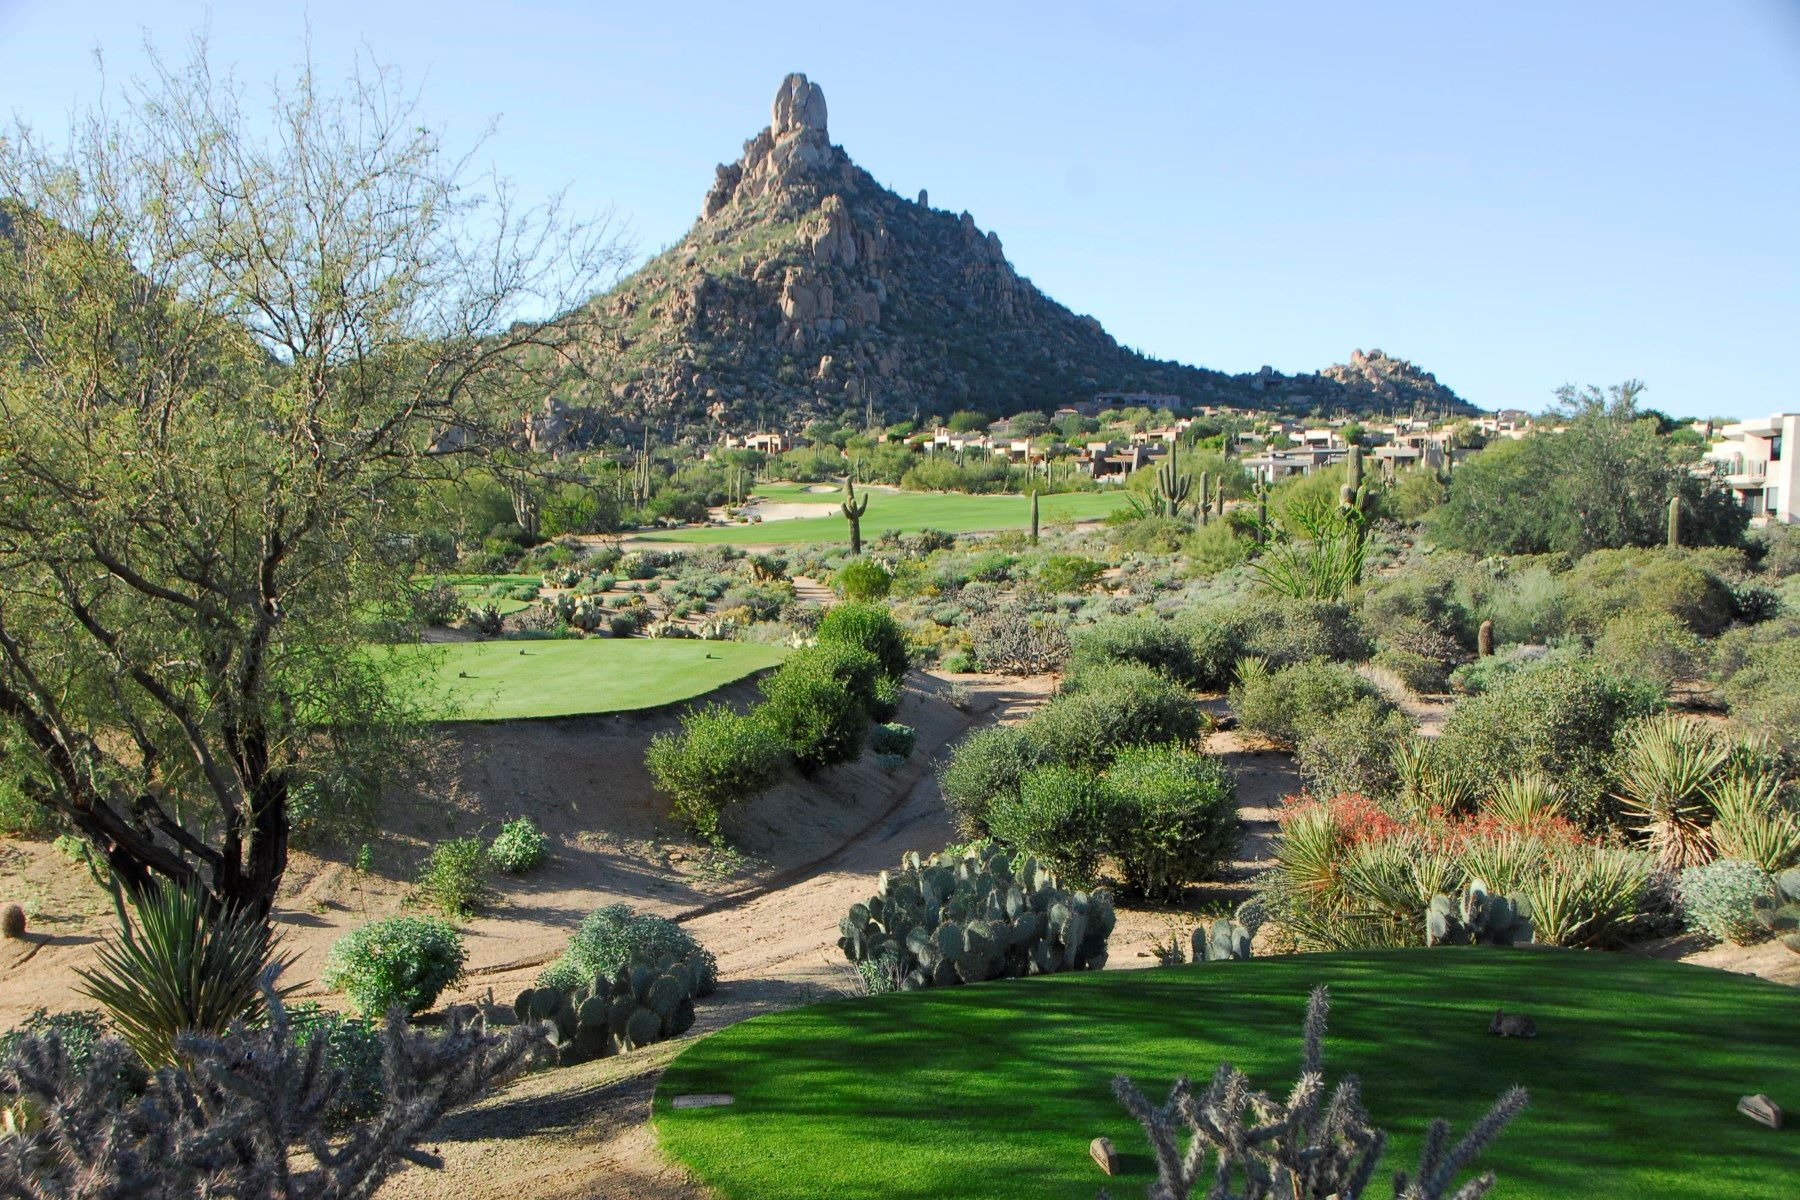 Land for Sale at Desert Highlands 10040 E HAPPY VALLEY RD 624 Scottsdale, Arizona 85255 United States